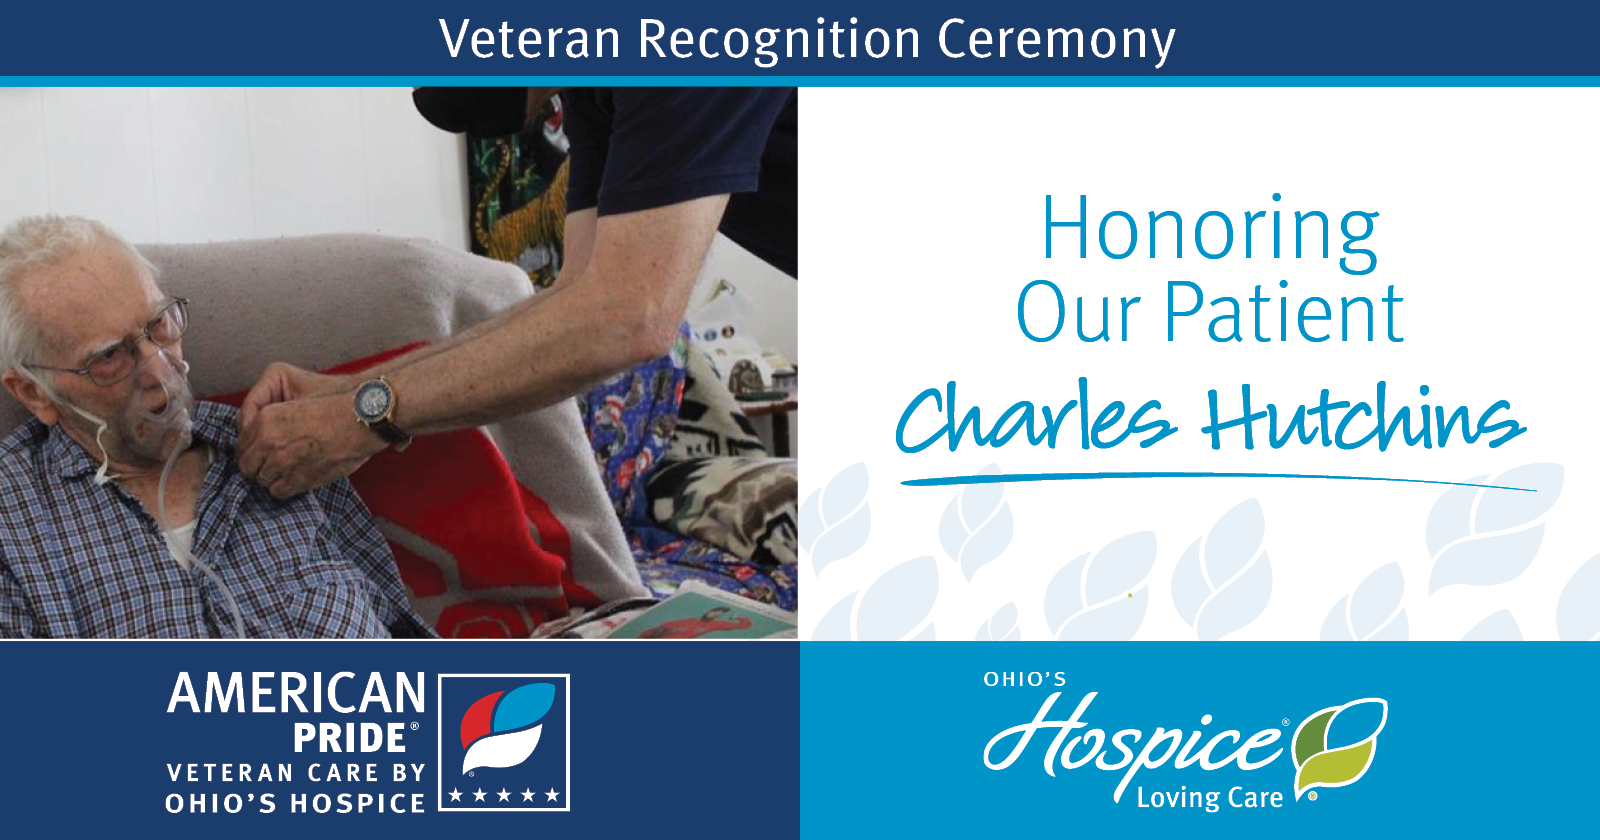 Honoring Our Patient Charles Hutchins